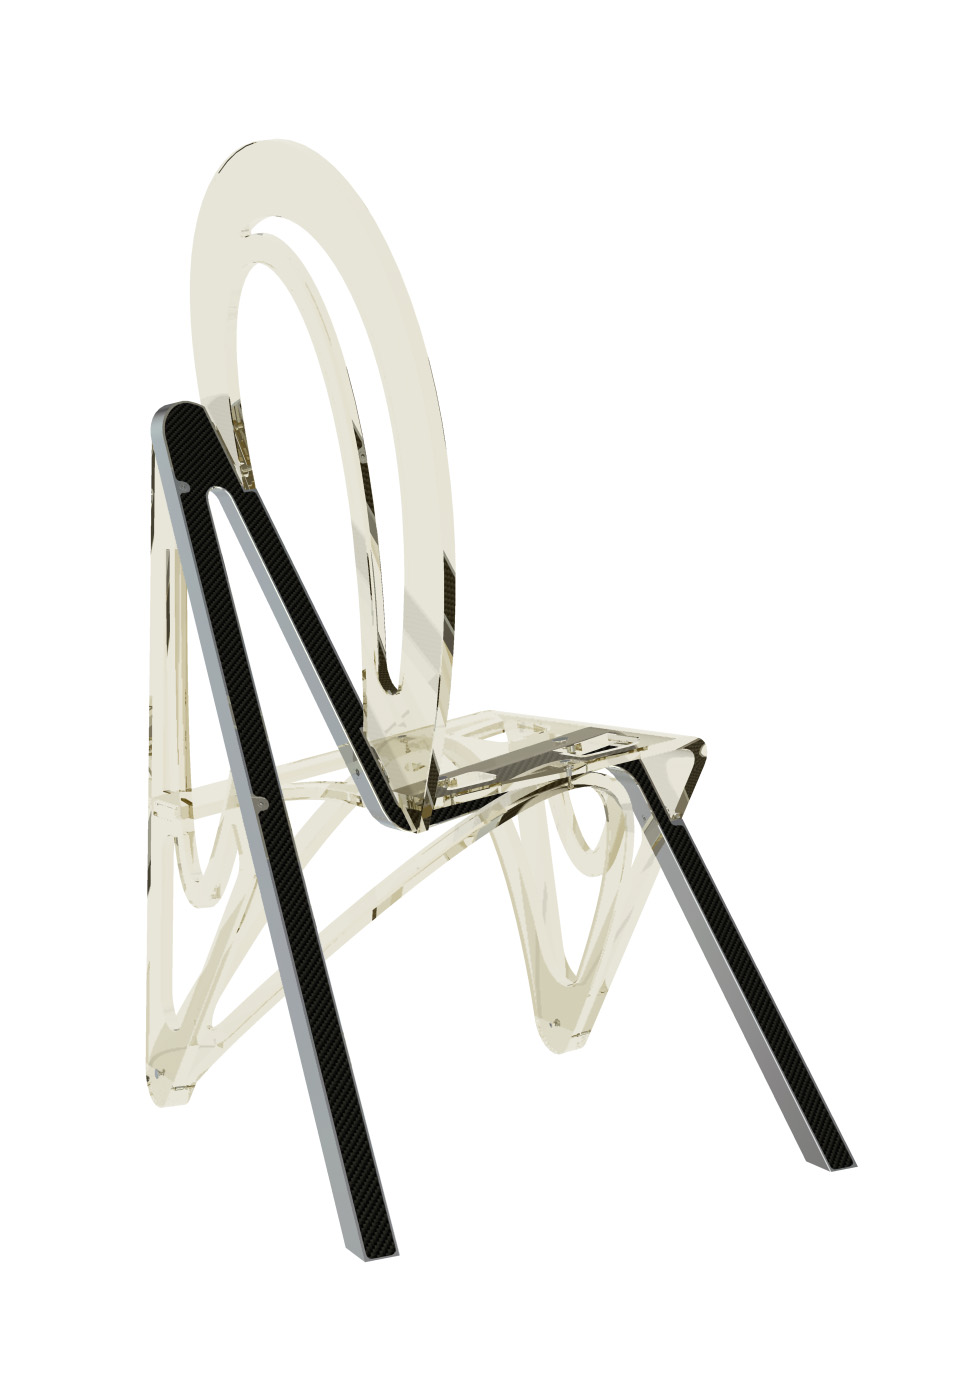 GZA Design presents the new chair design theb-Chair